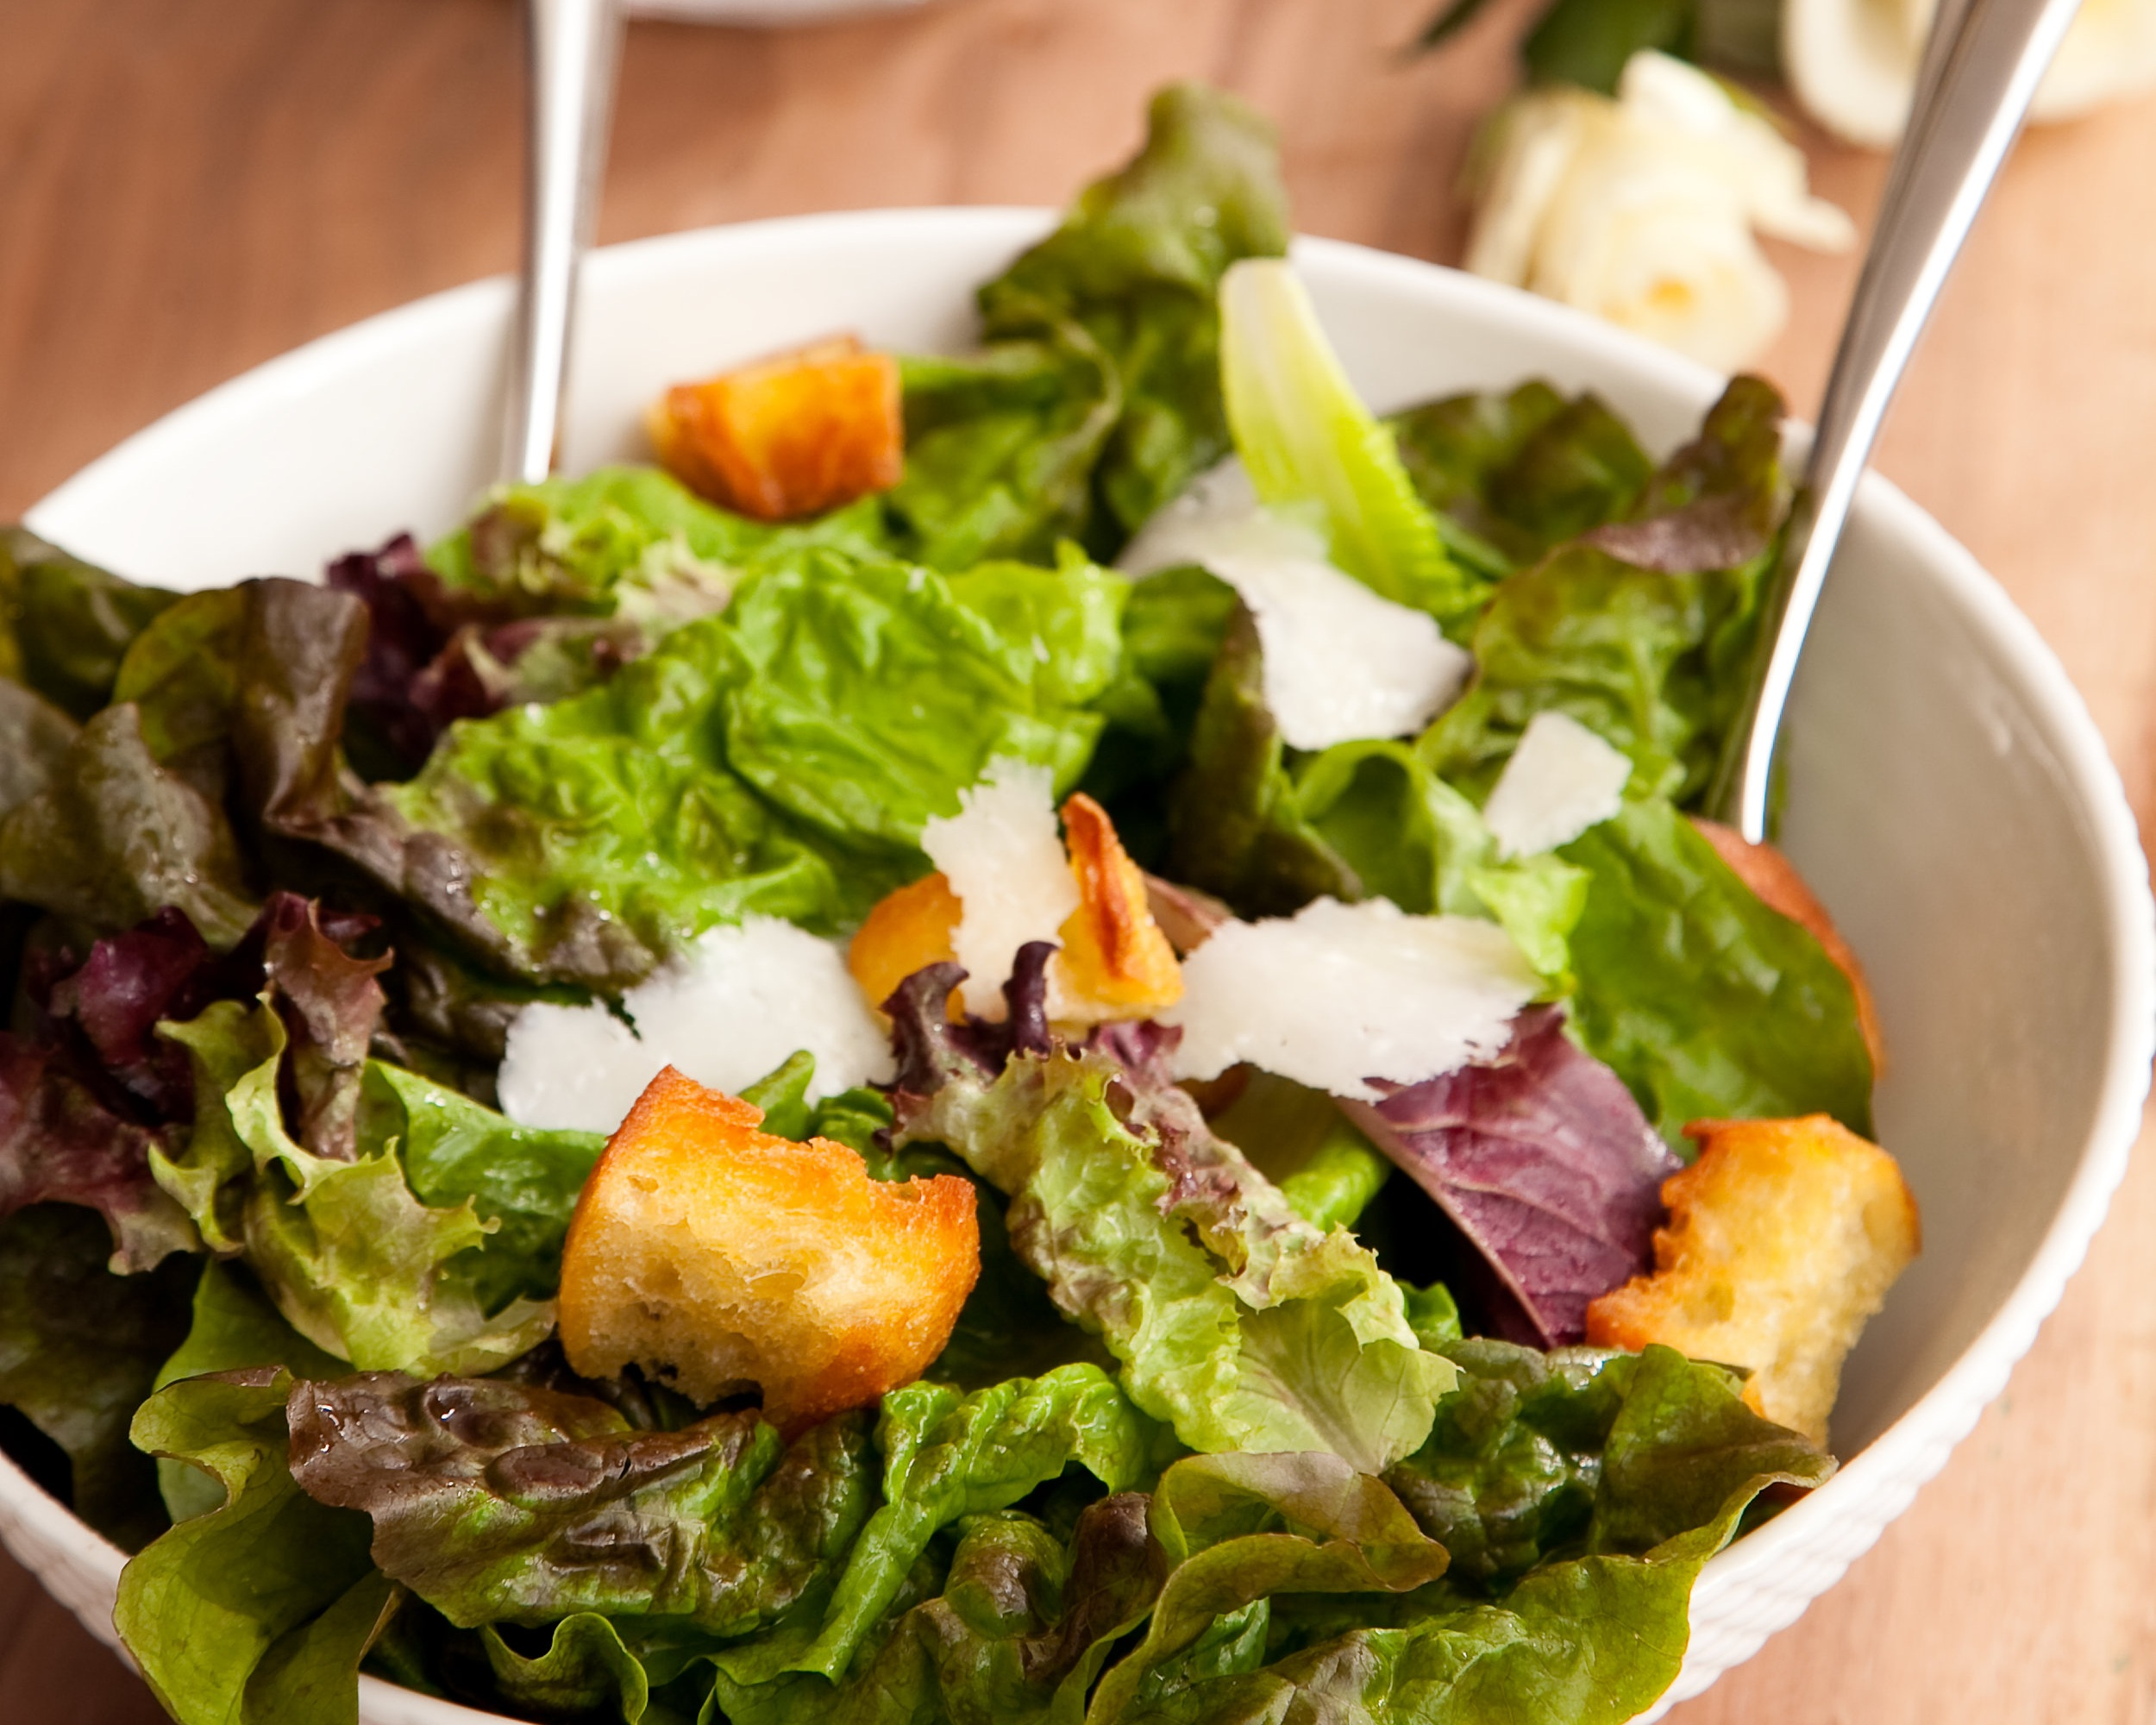 Red oak leaf with garlic croutons and Dijon dressing.jpg